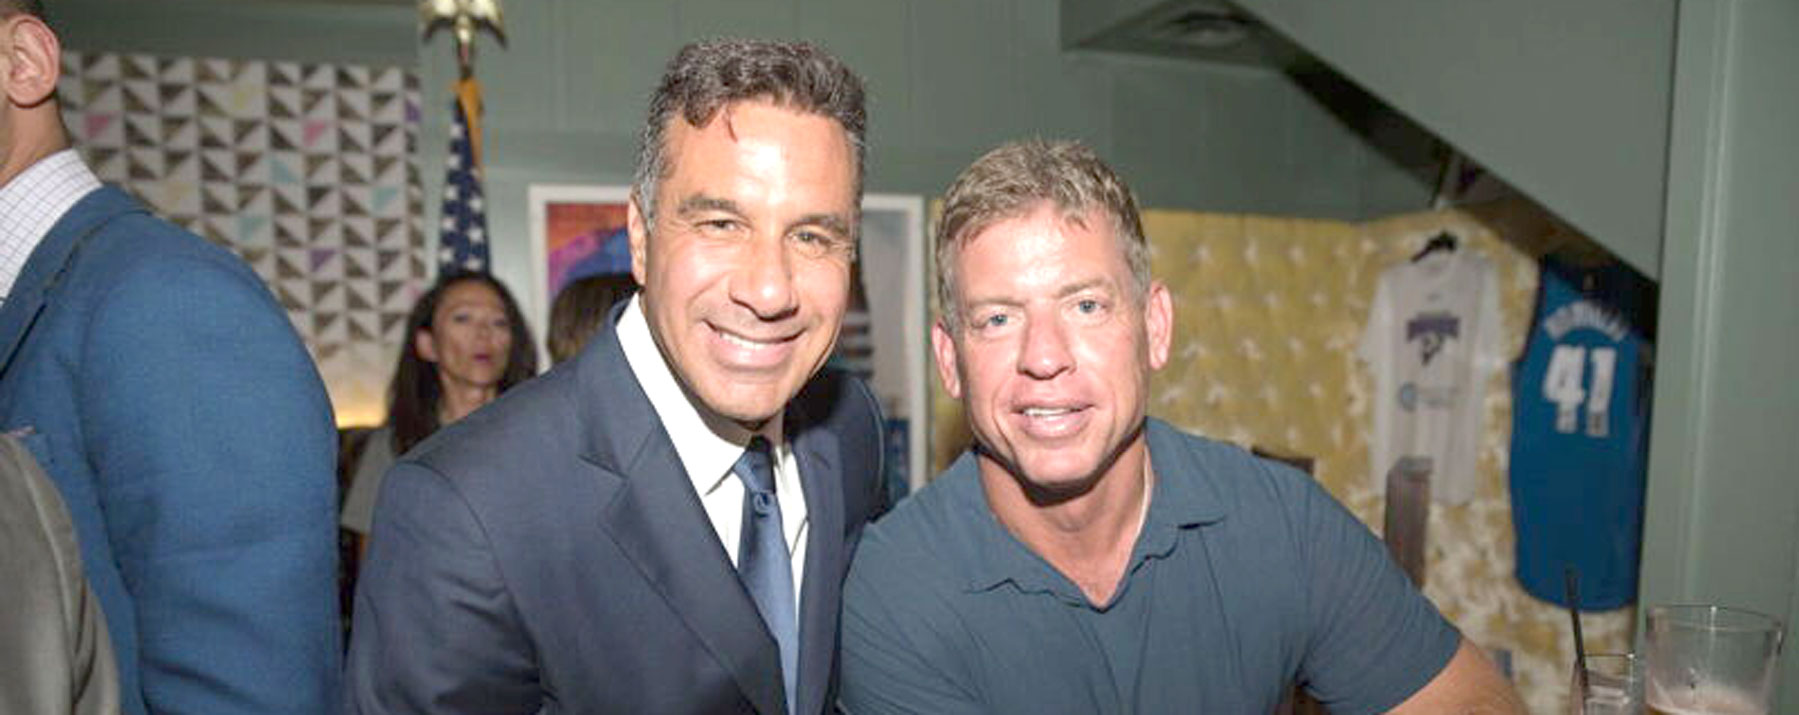 Troy Aikman and Palladino